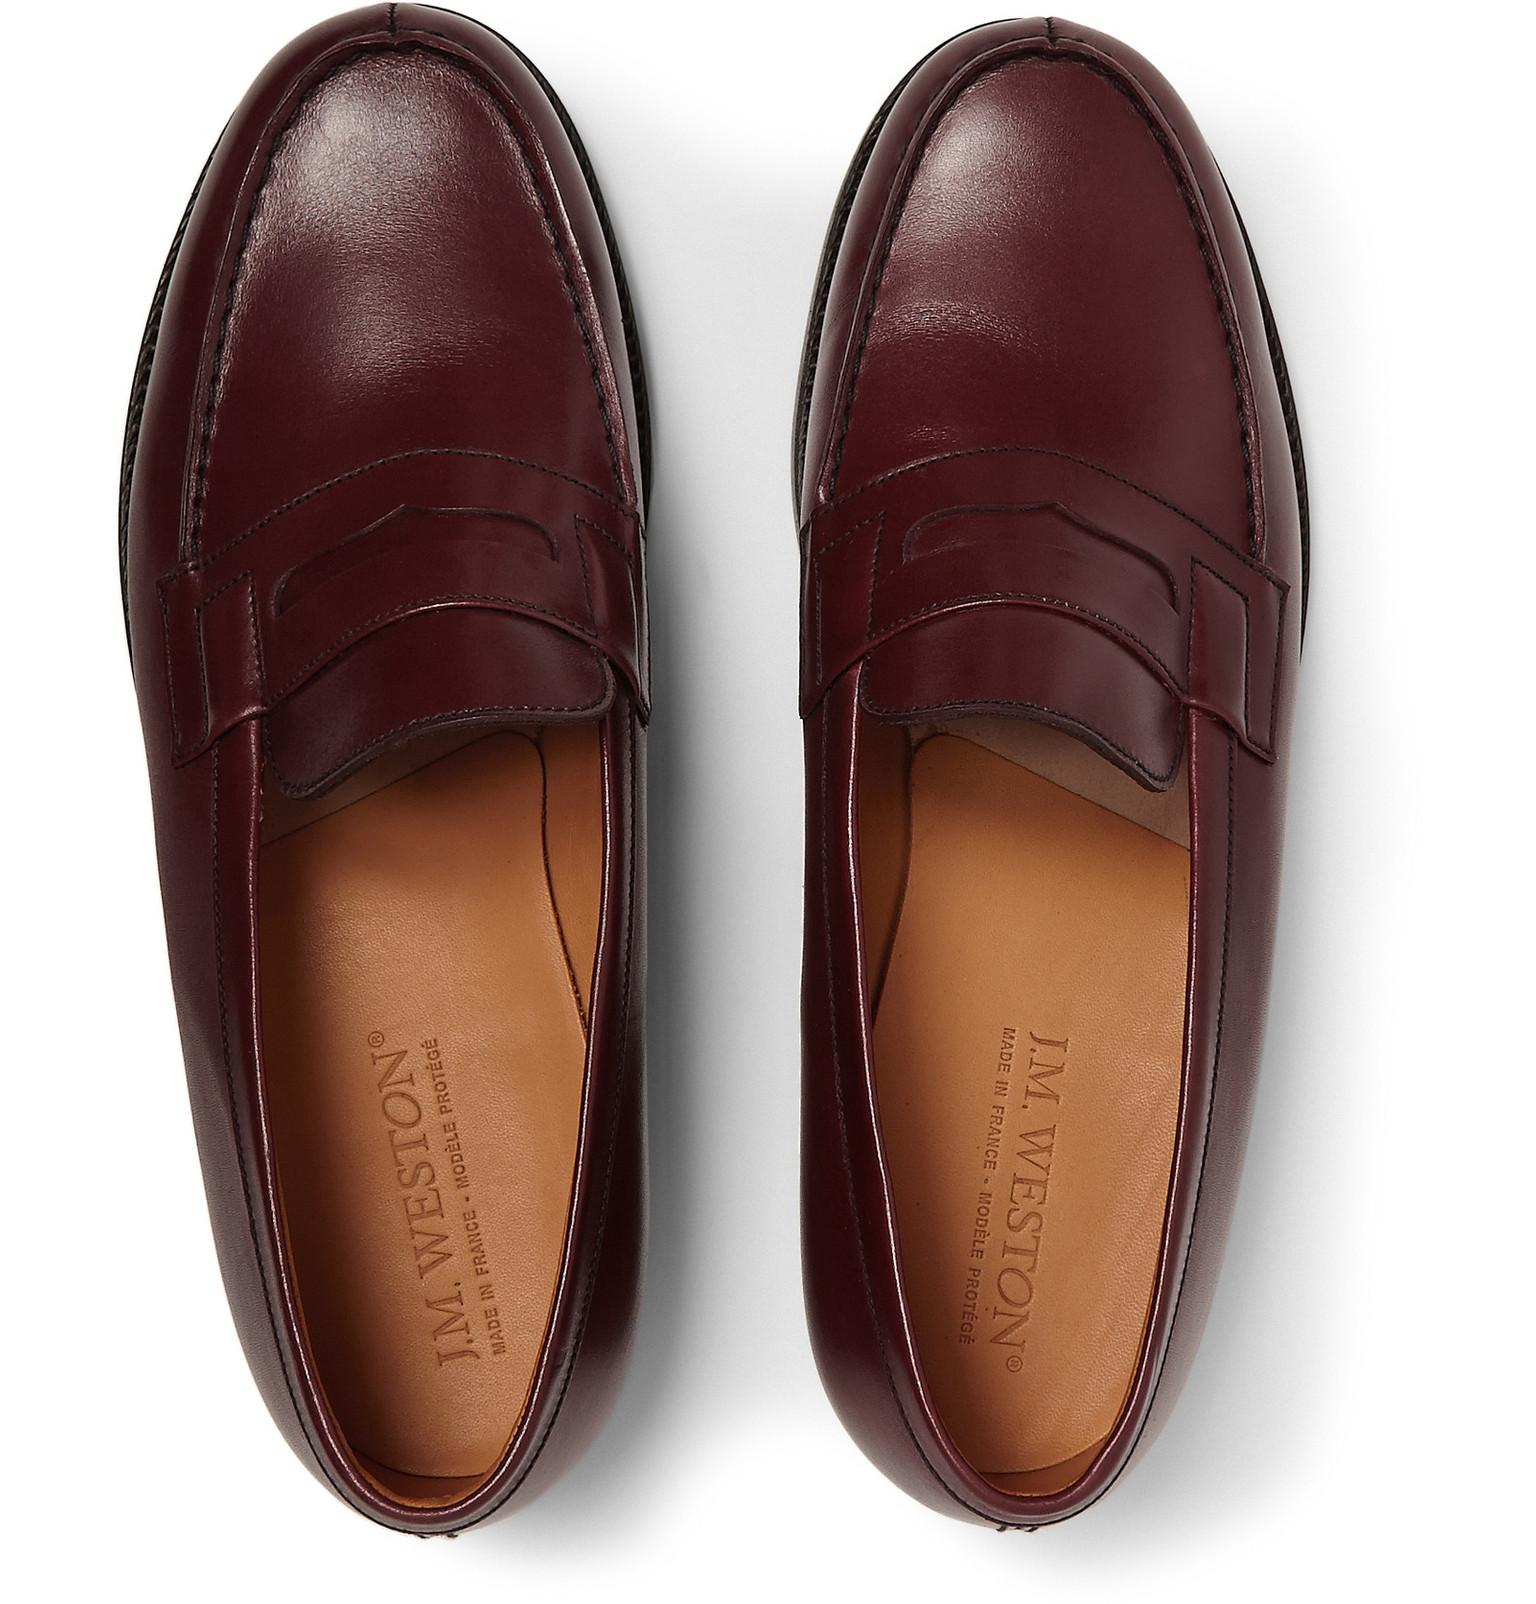 J.M. Weston 180 Mocassin Leather Loafers in Burgundy (Purple) for Men